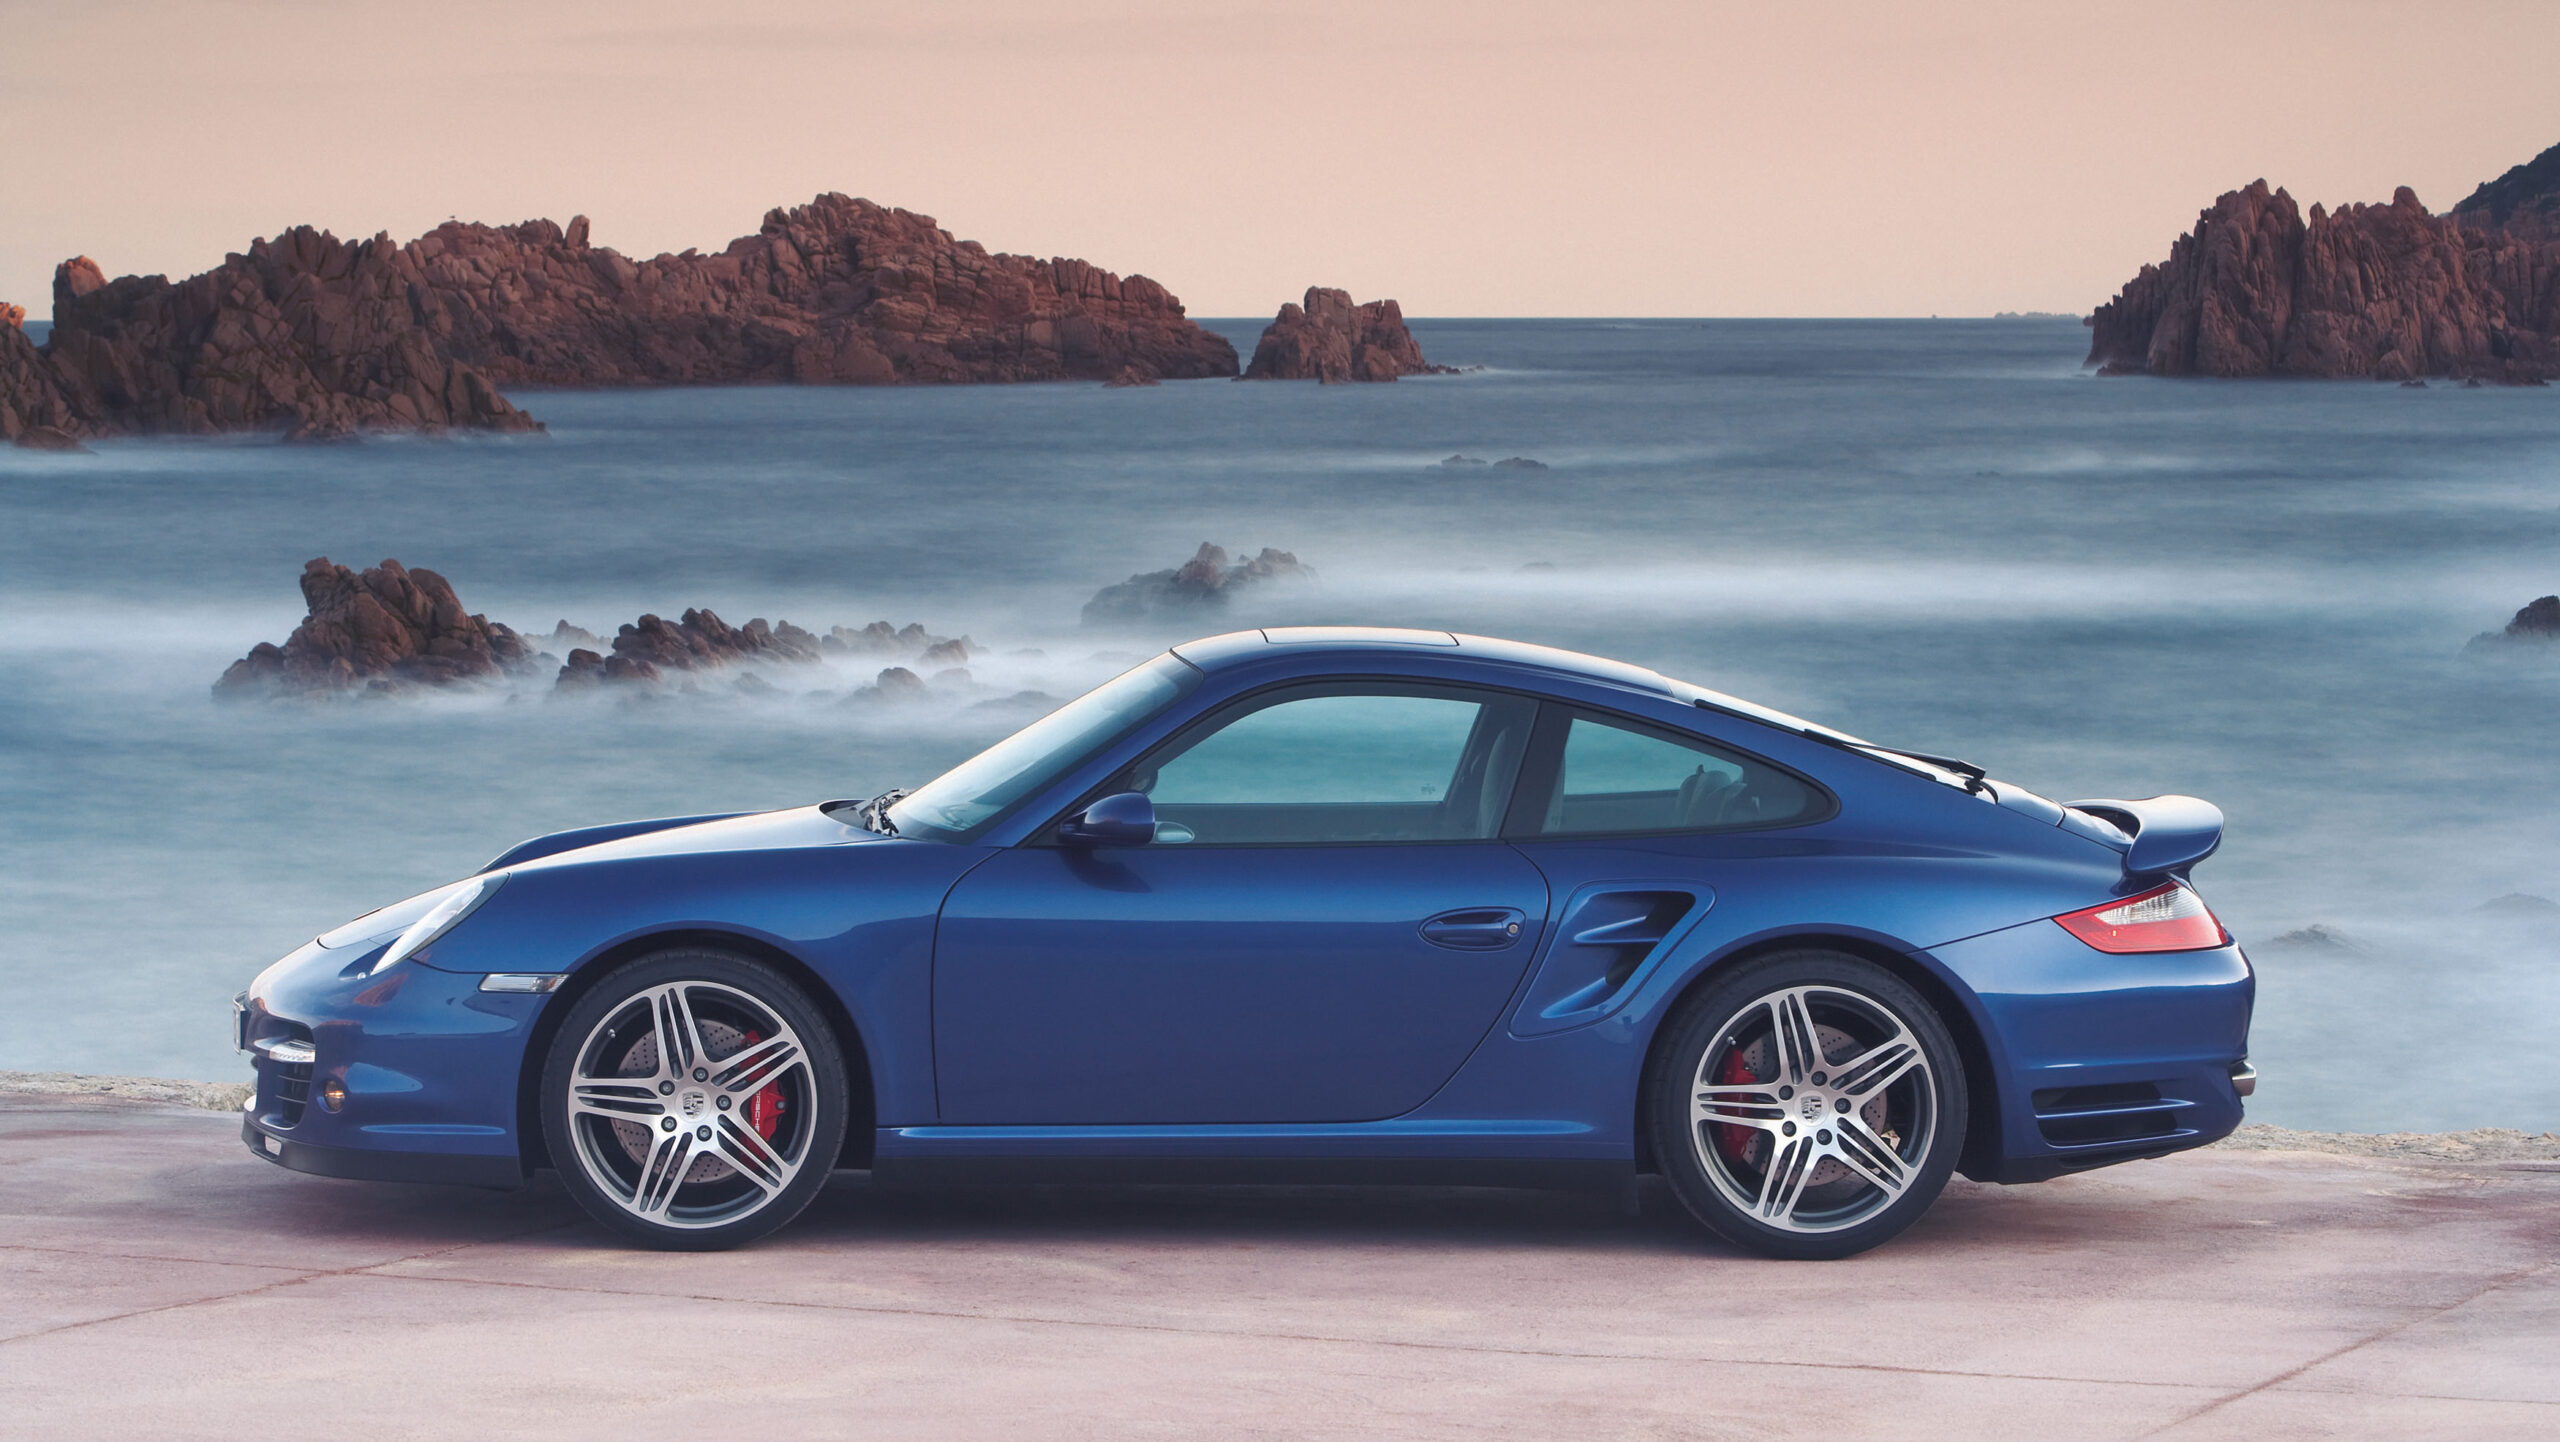 The 997 New Design and Great Variety